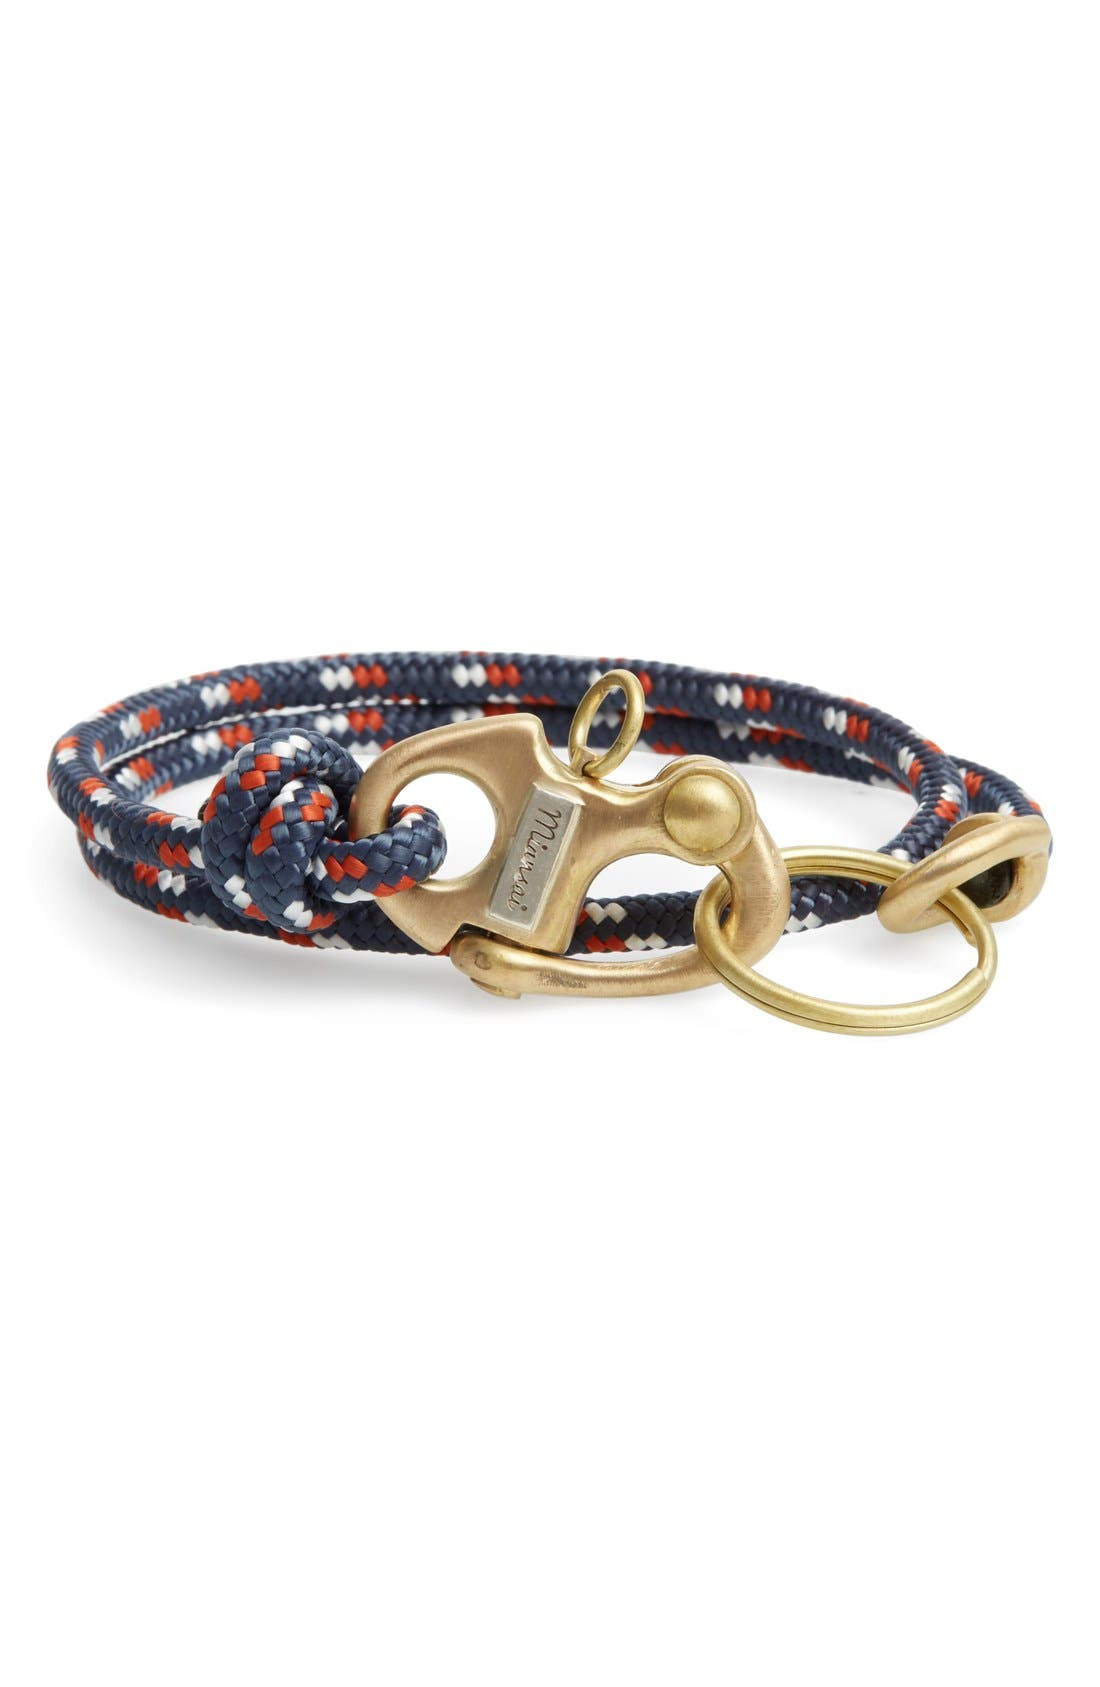 'Picton' Rope Keychain,                             Main thumbnail 1, color,                             412